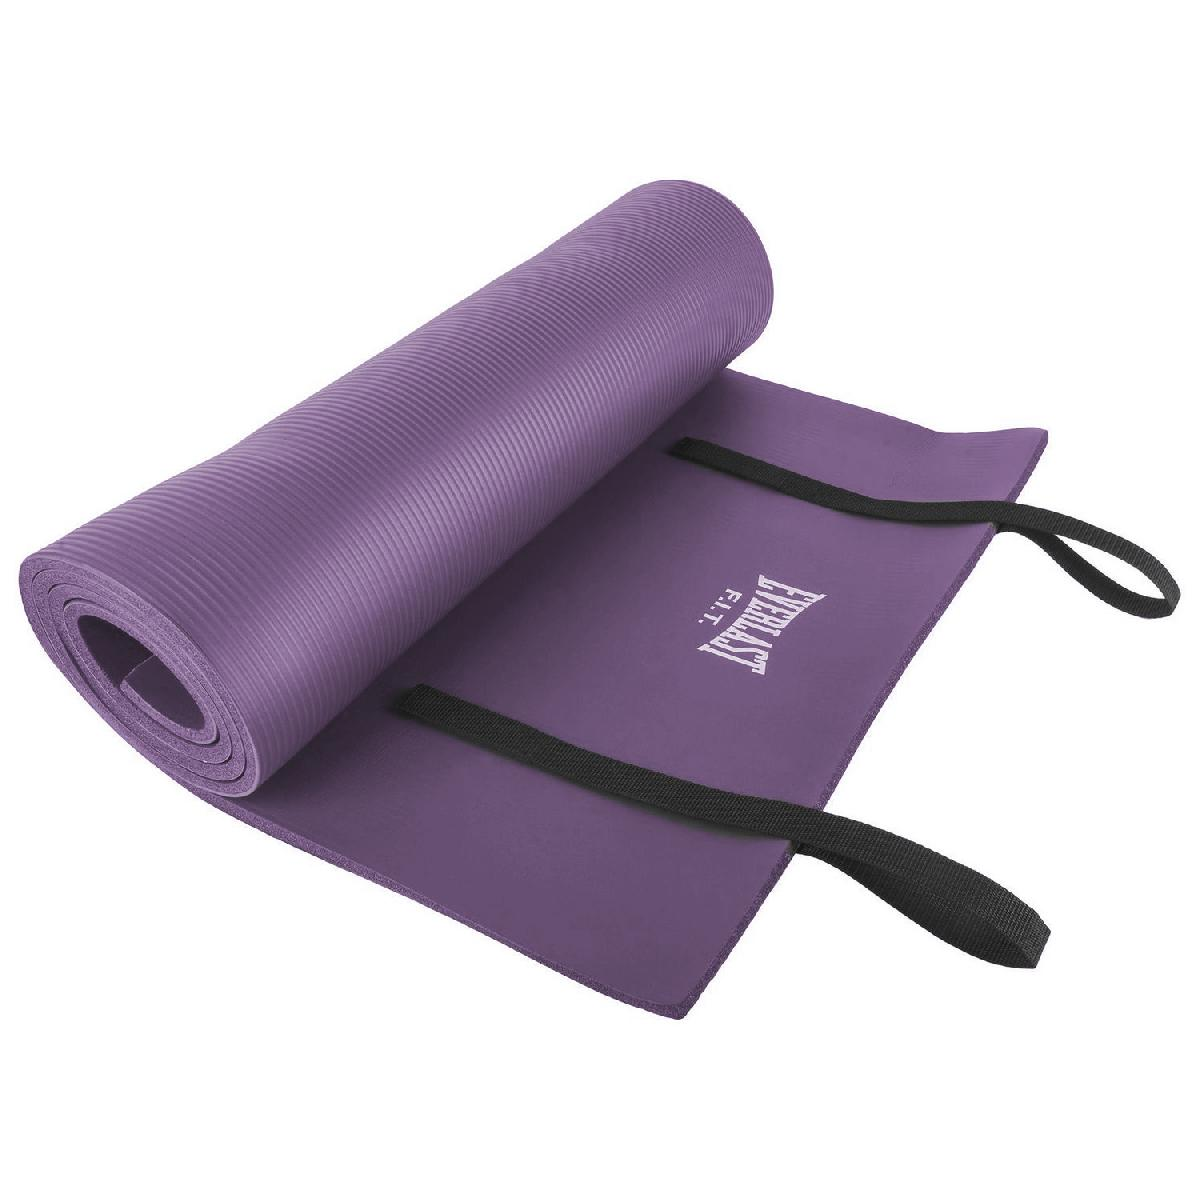 10MM FOAM EXERCISE MAT WITH CARRY STRAP